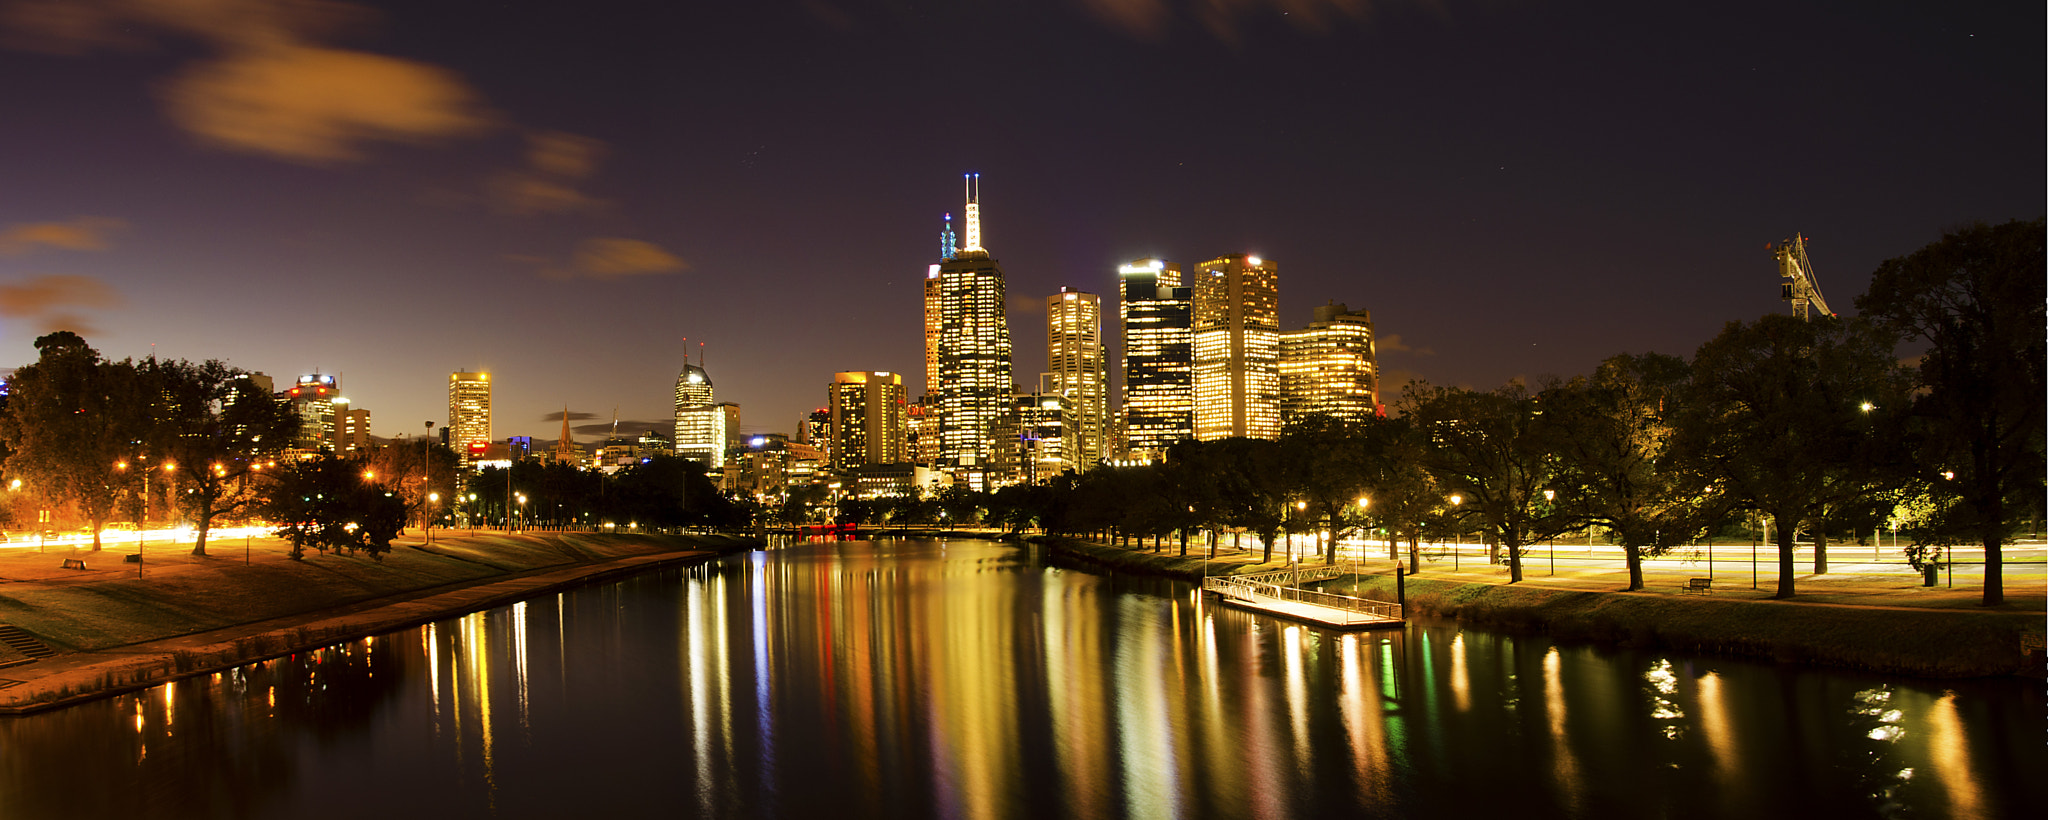 Photograph Melbourne @ night by Martijn Barendregt on 500px